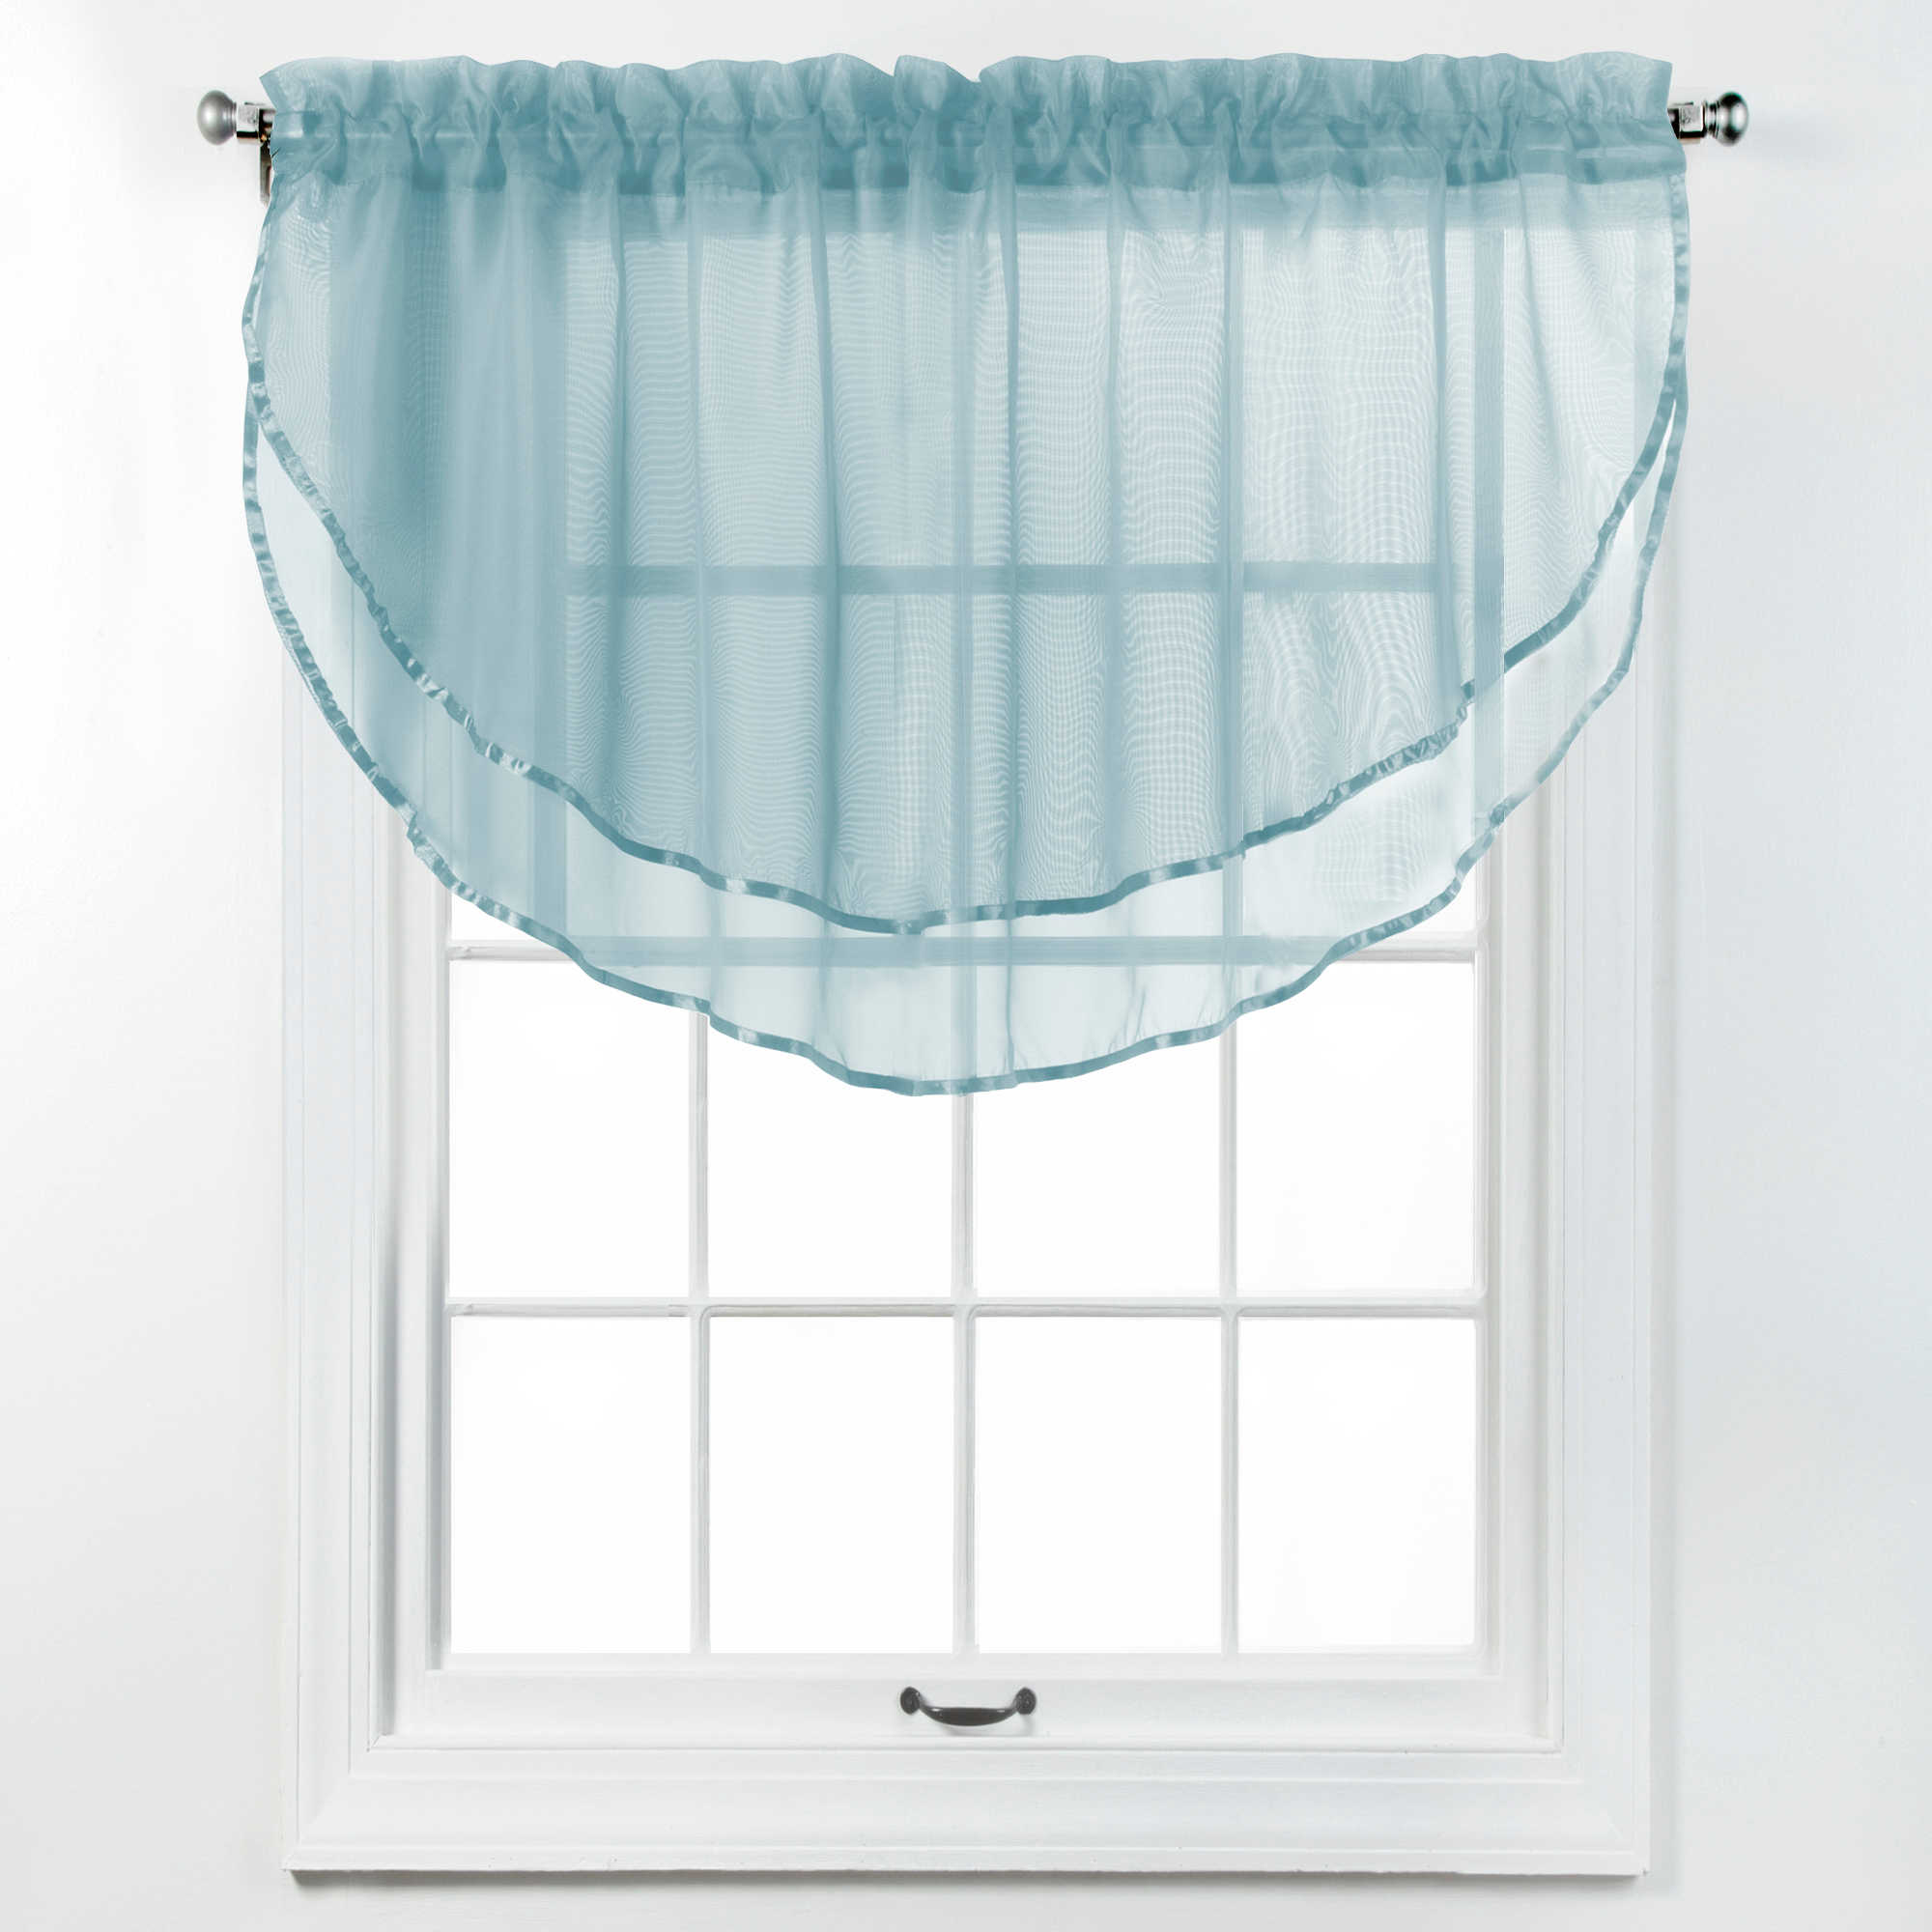 feel window ascot click can expand to room look change valances valance czrusdi a of the